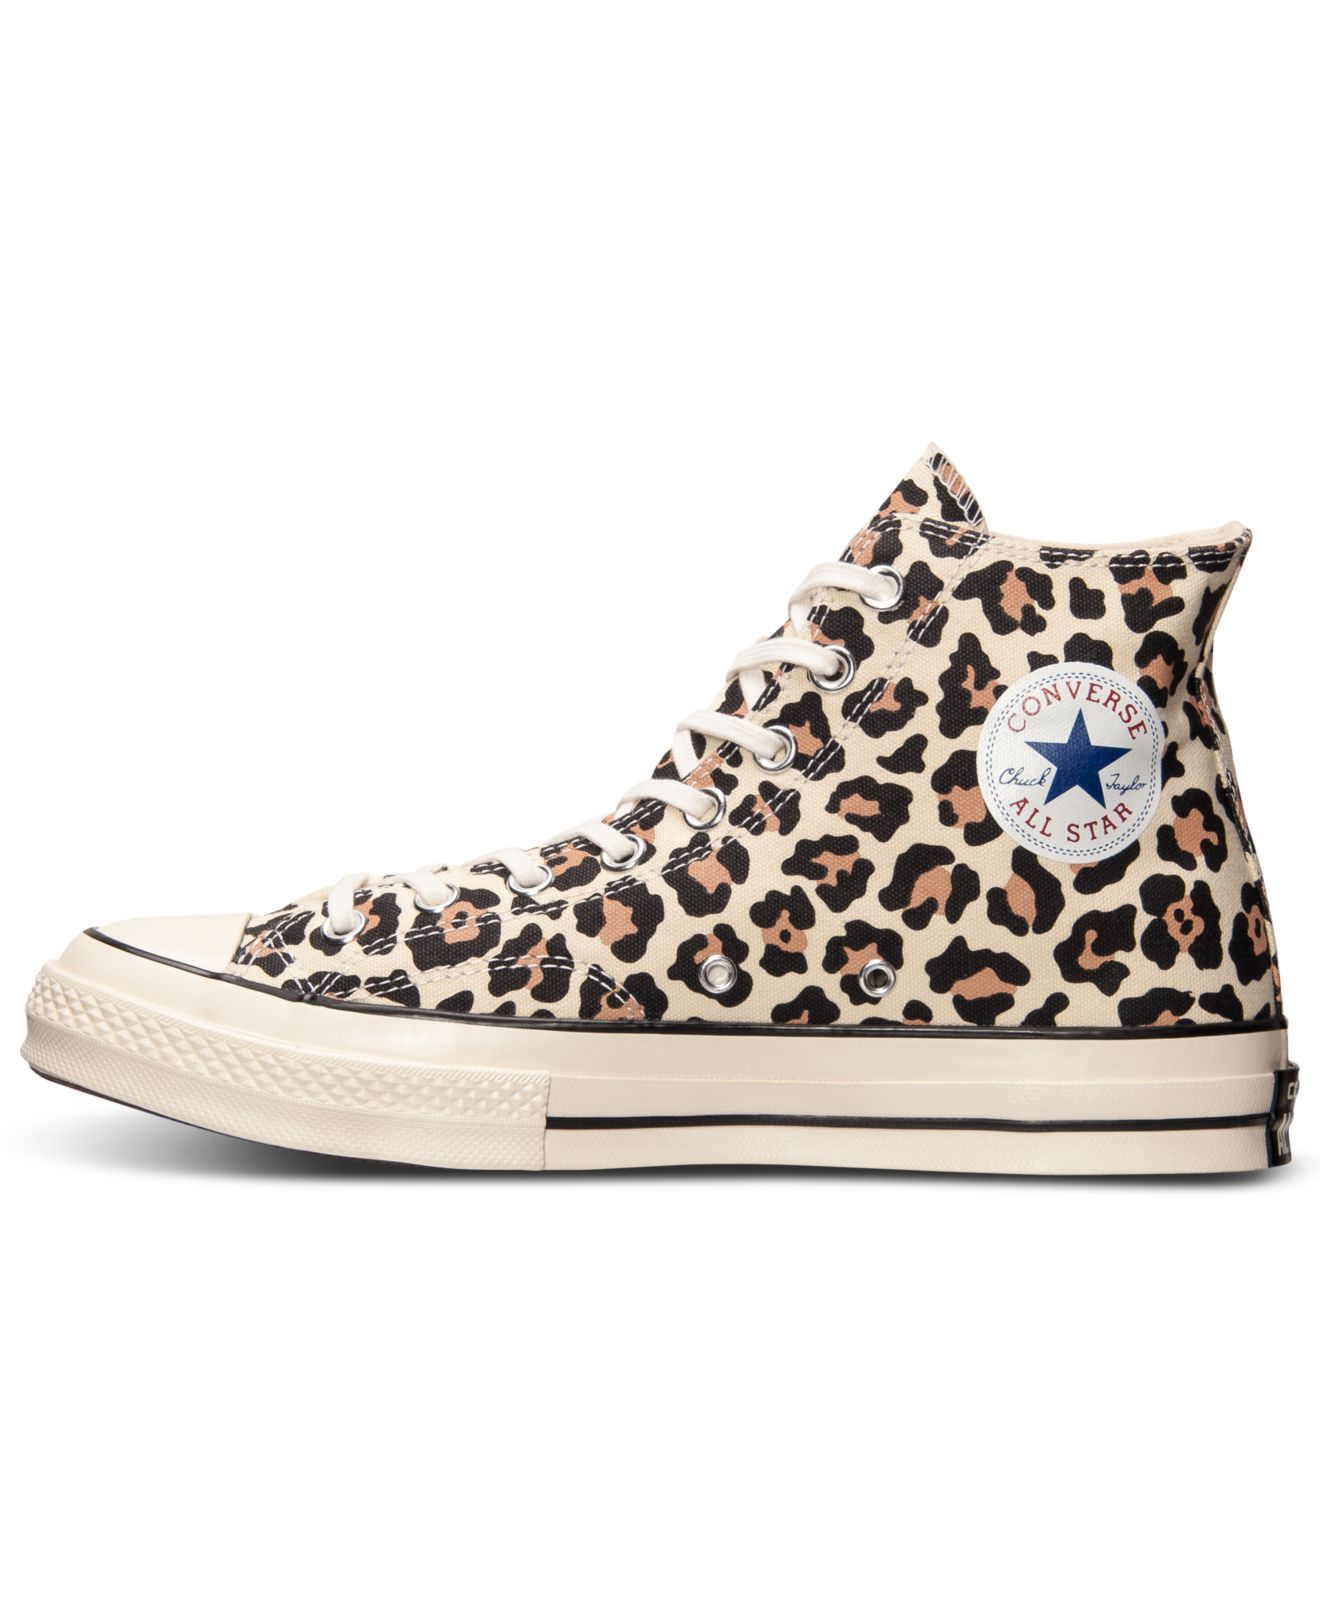 f586407a15a5 Converse CT 70's Leopard print High | Sneakers in 2019 | Fashion ...